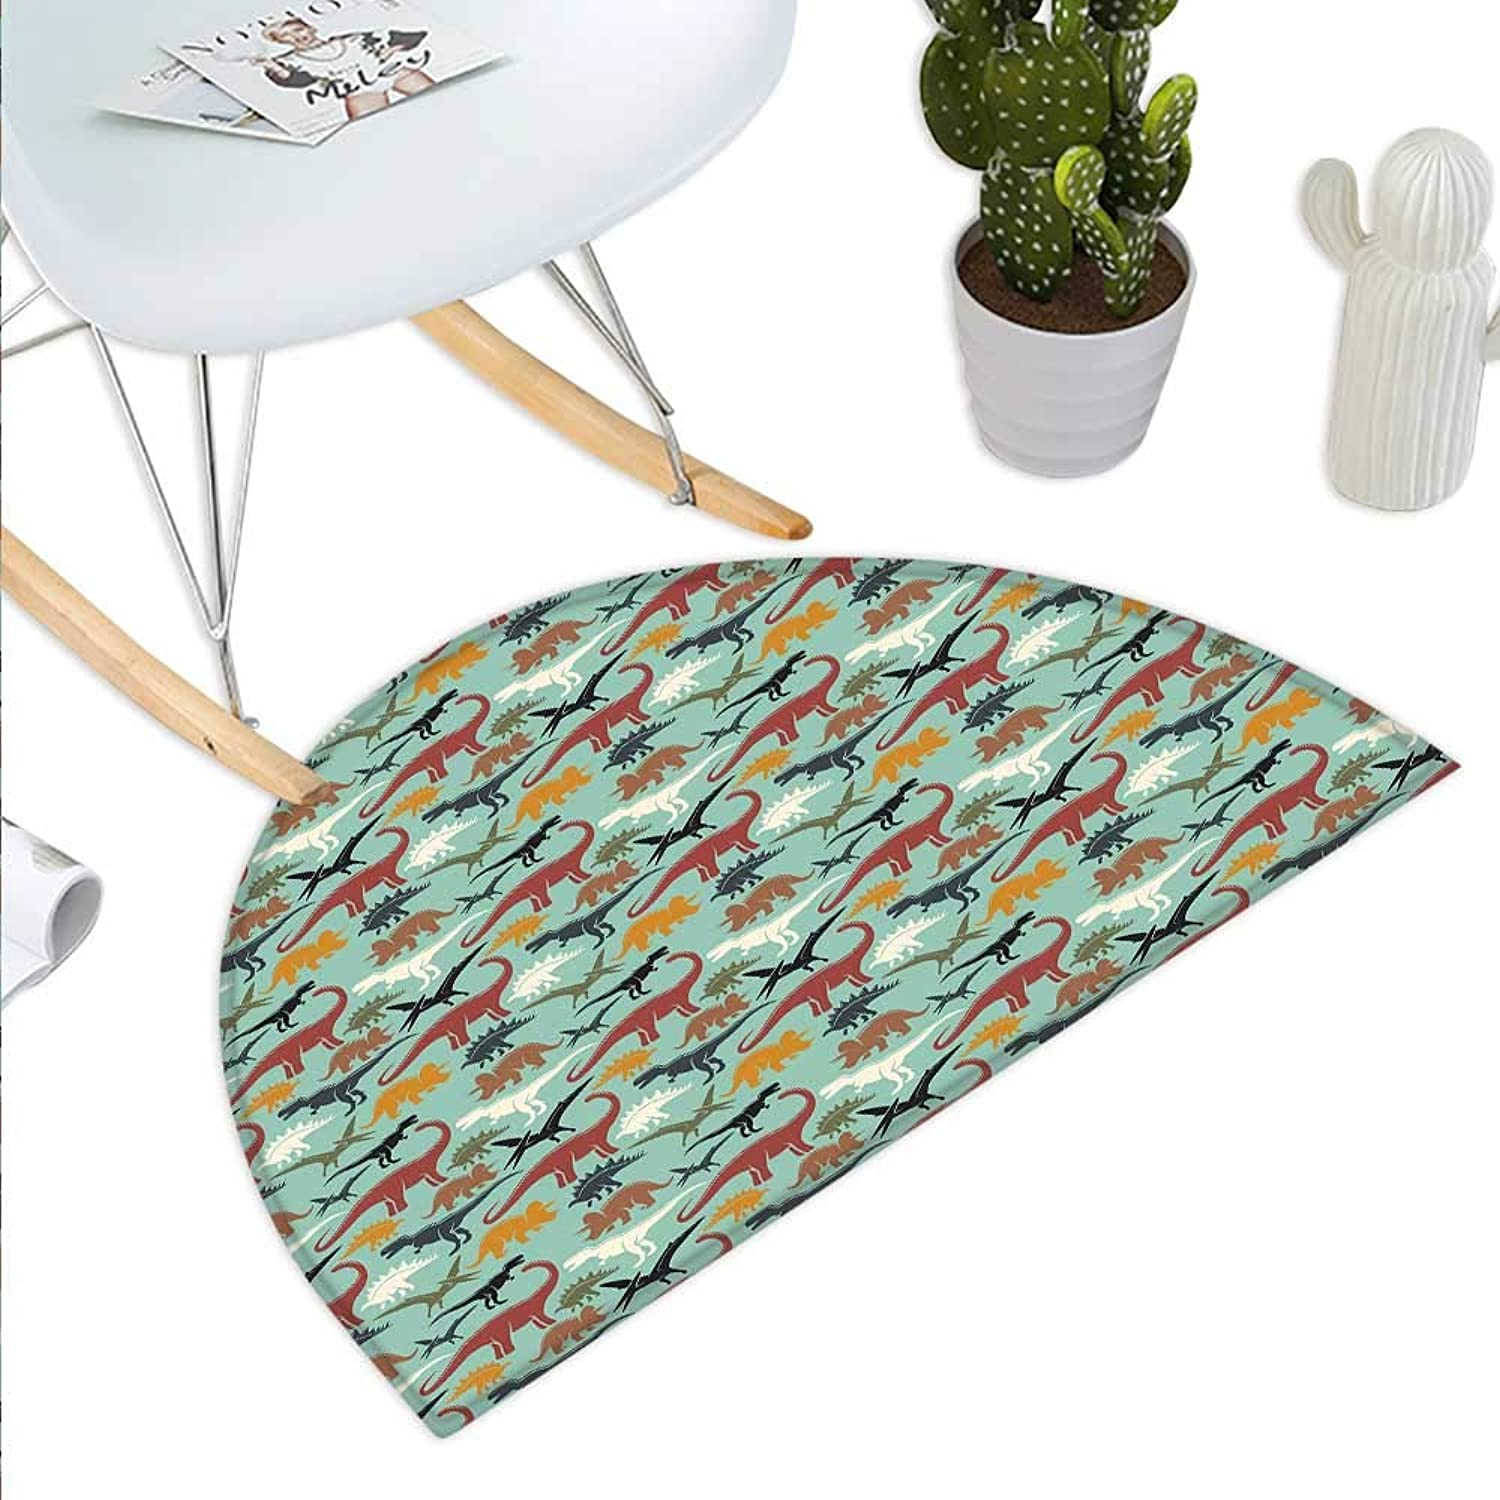 Dinosaur Semicircle Doormat Retro colord Prehistoric Animal Silhouettes Different Dino Types Extinct Species Halfmoon doormats H 43.3  xD 64.9  Multicolor